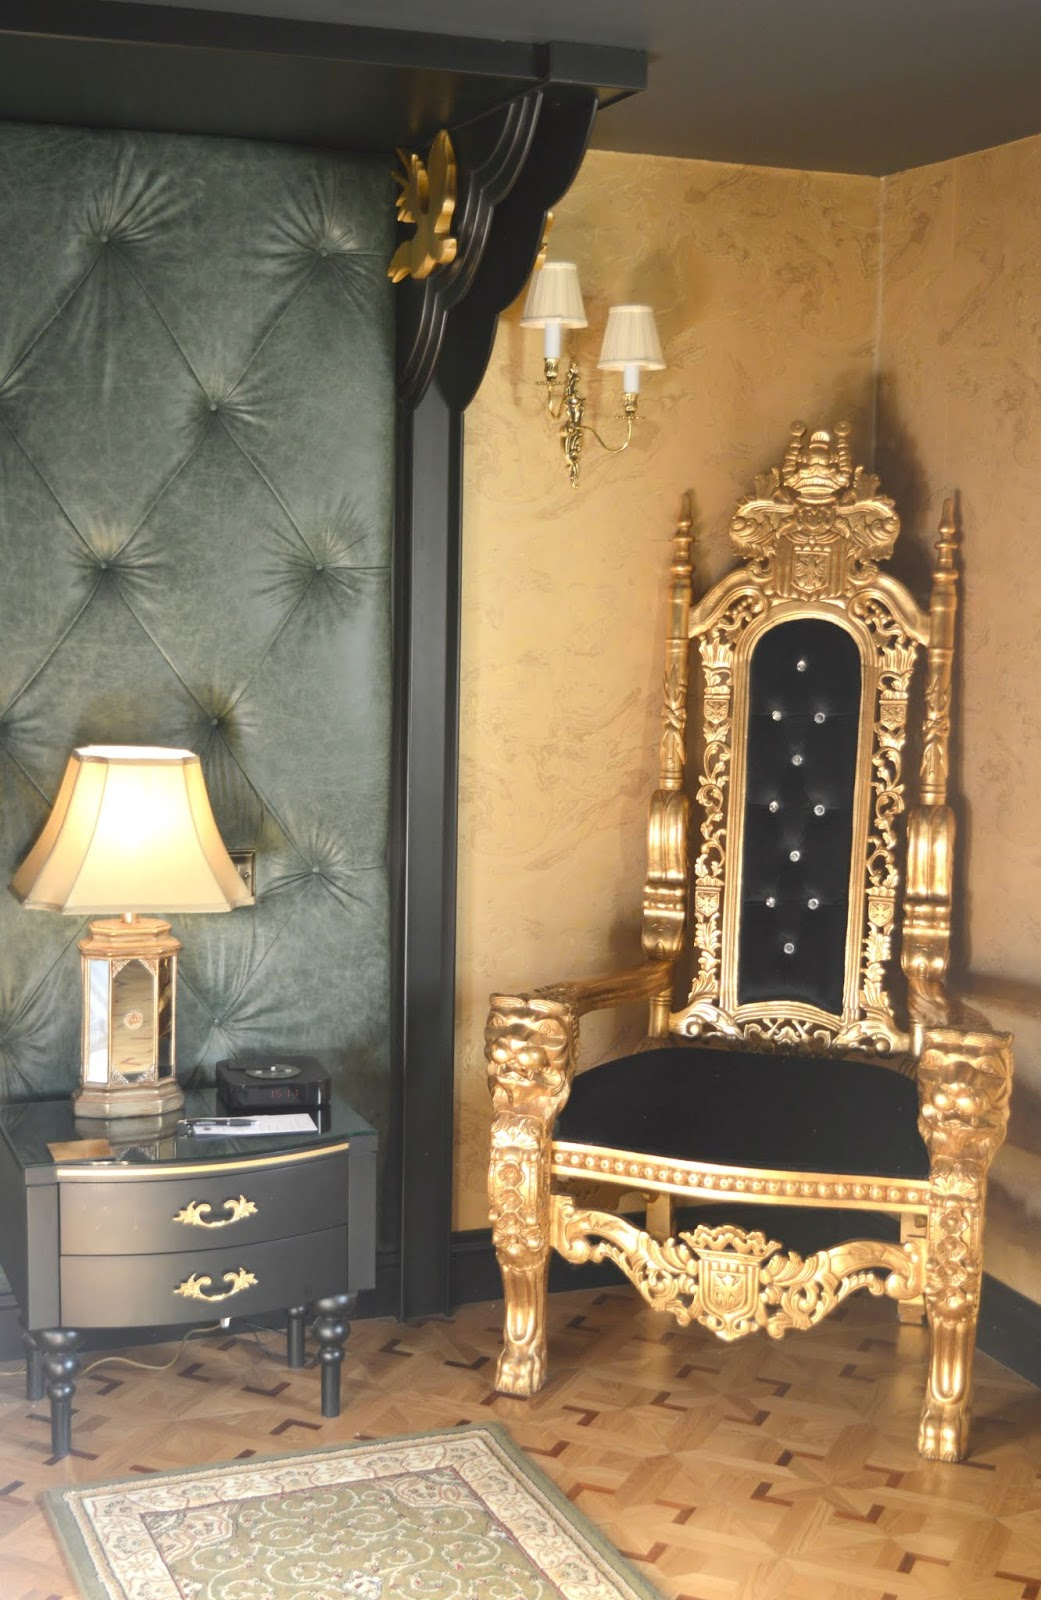 Luxury Suite at Crab Manor at the Crab & Lobster, Thirsk